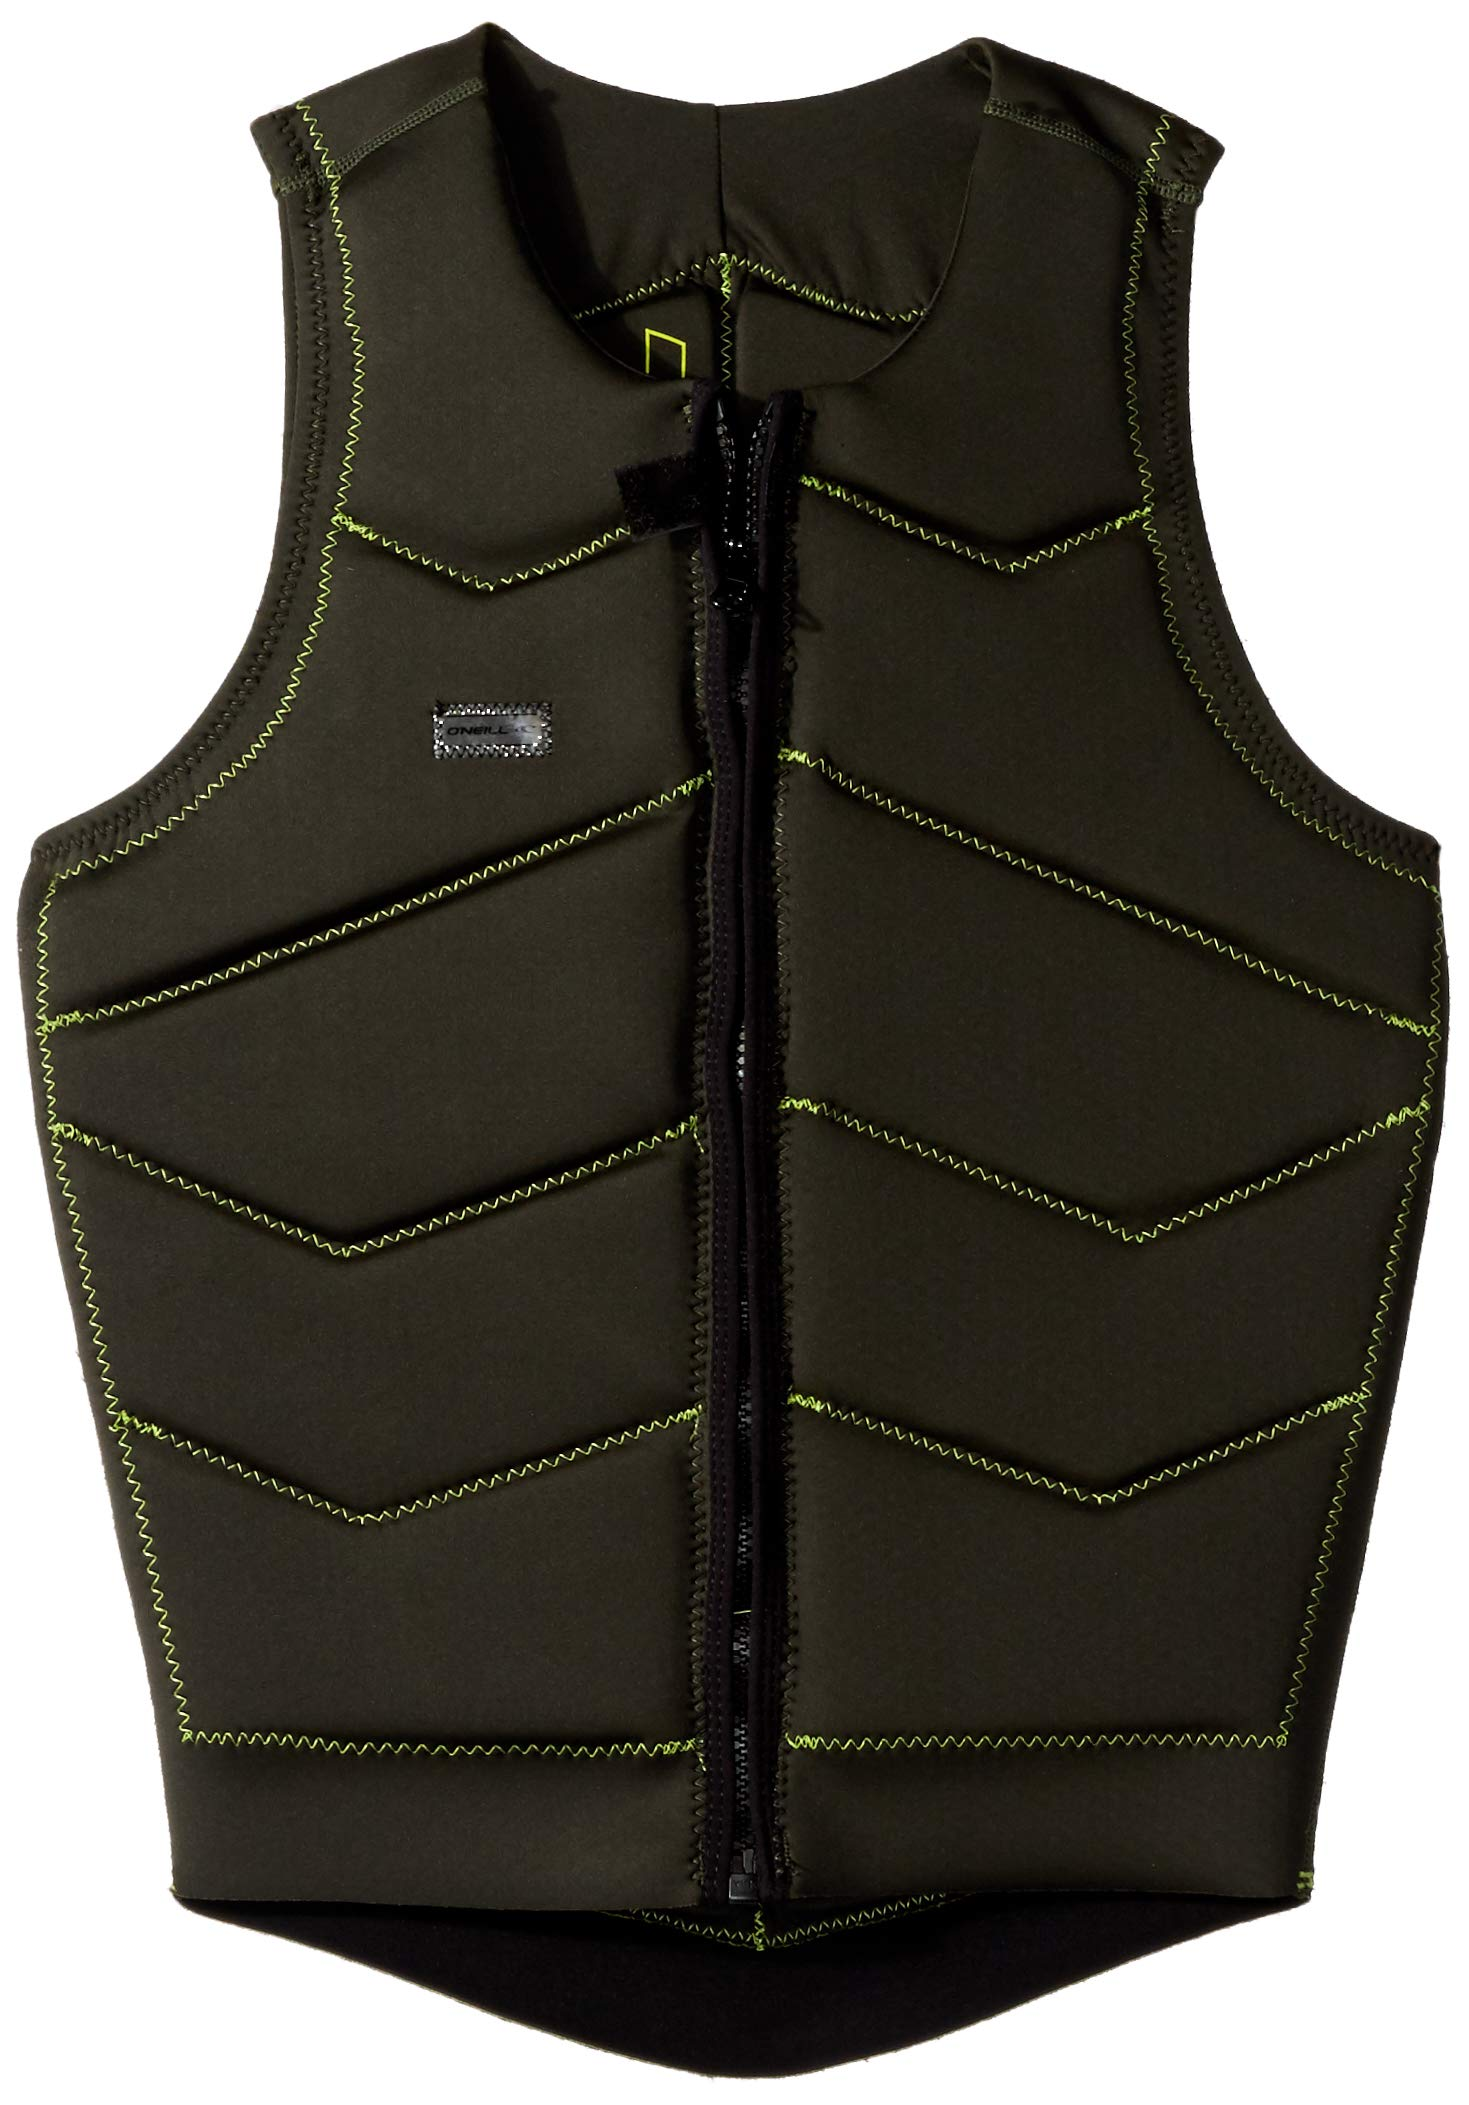 O'Neill Wetsuits Men's Hyperfreak Comp Vest, Fade Green: Lime, X-Small by O'Neill Wetsuits